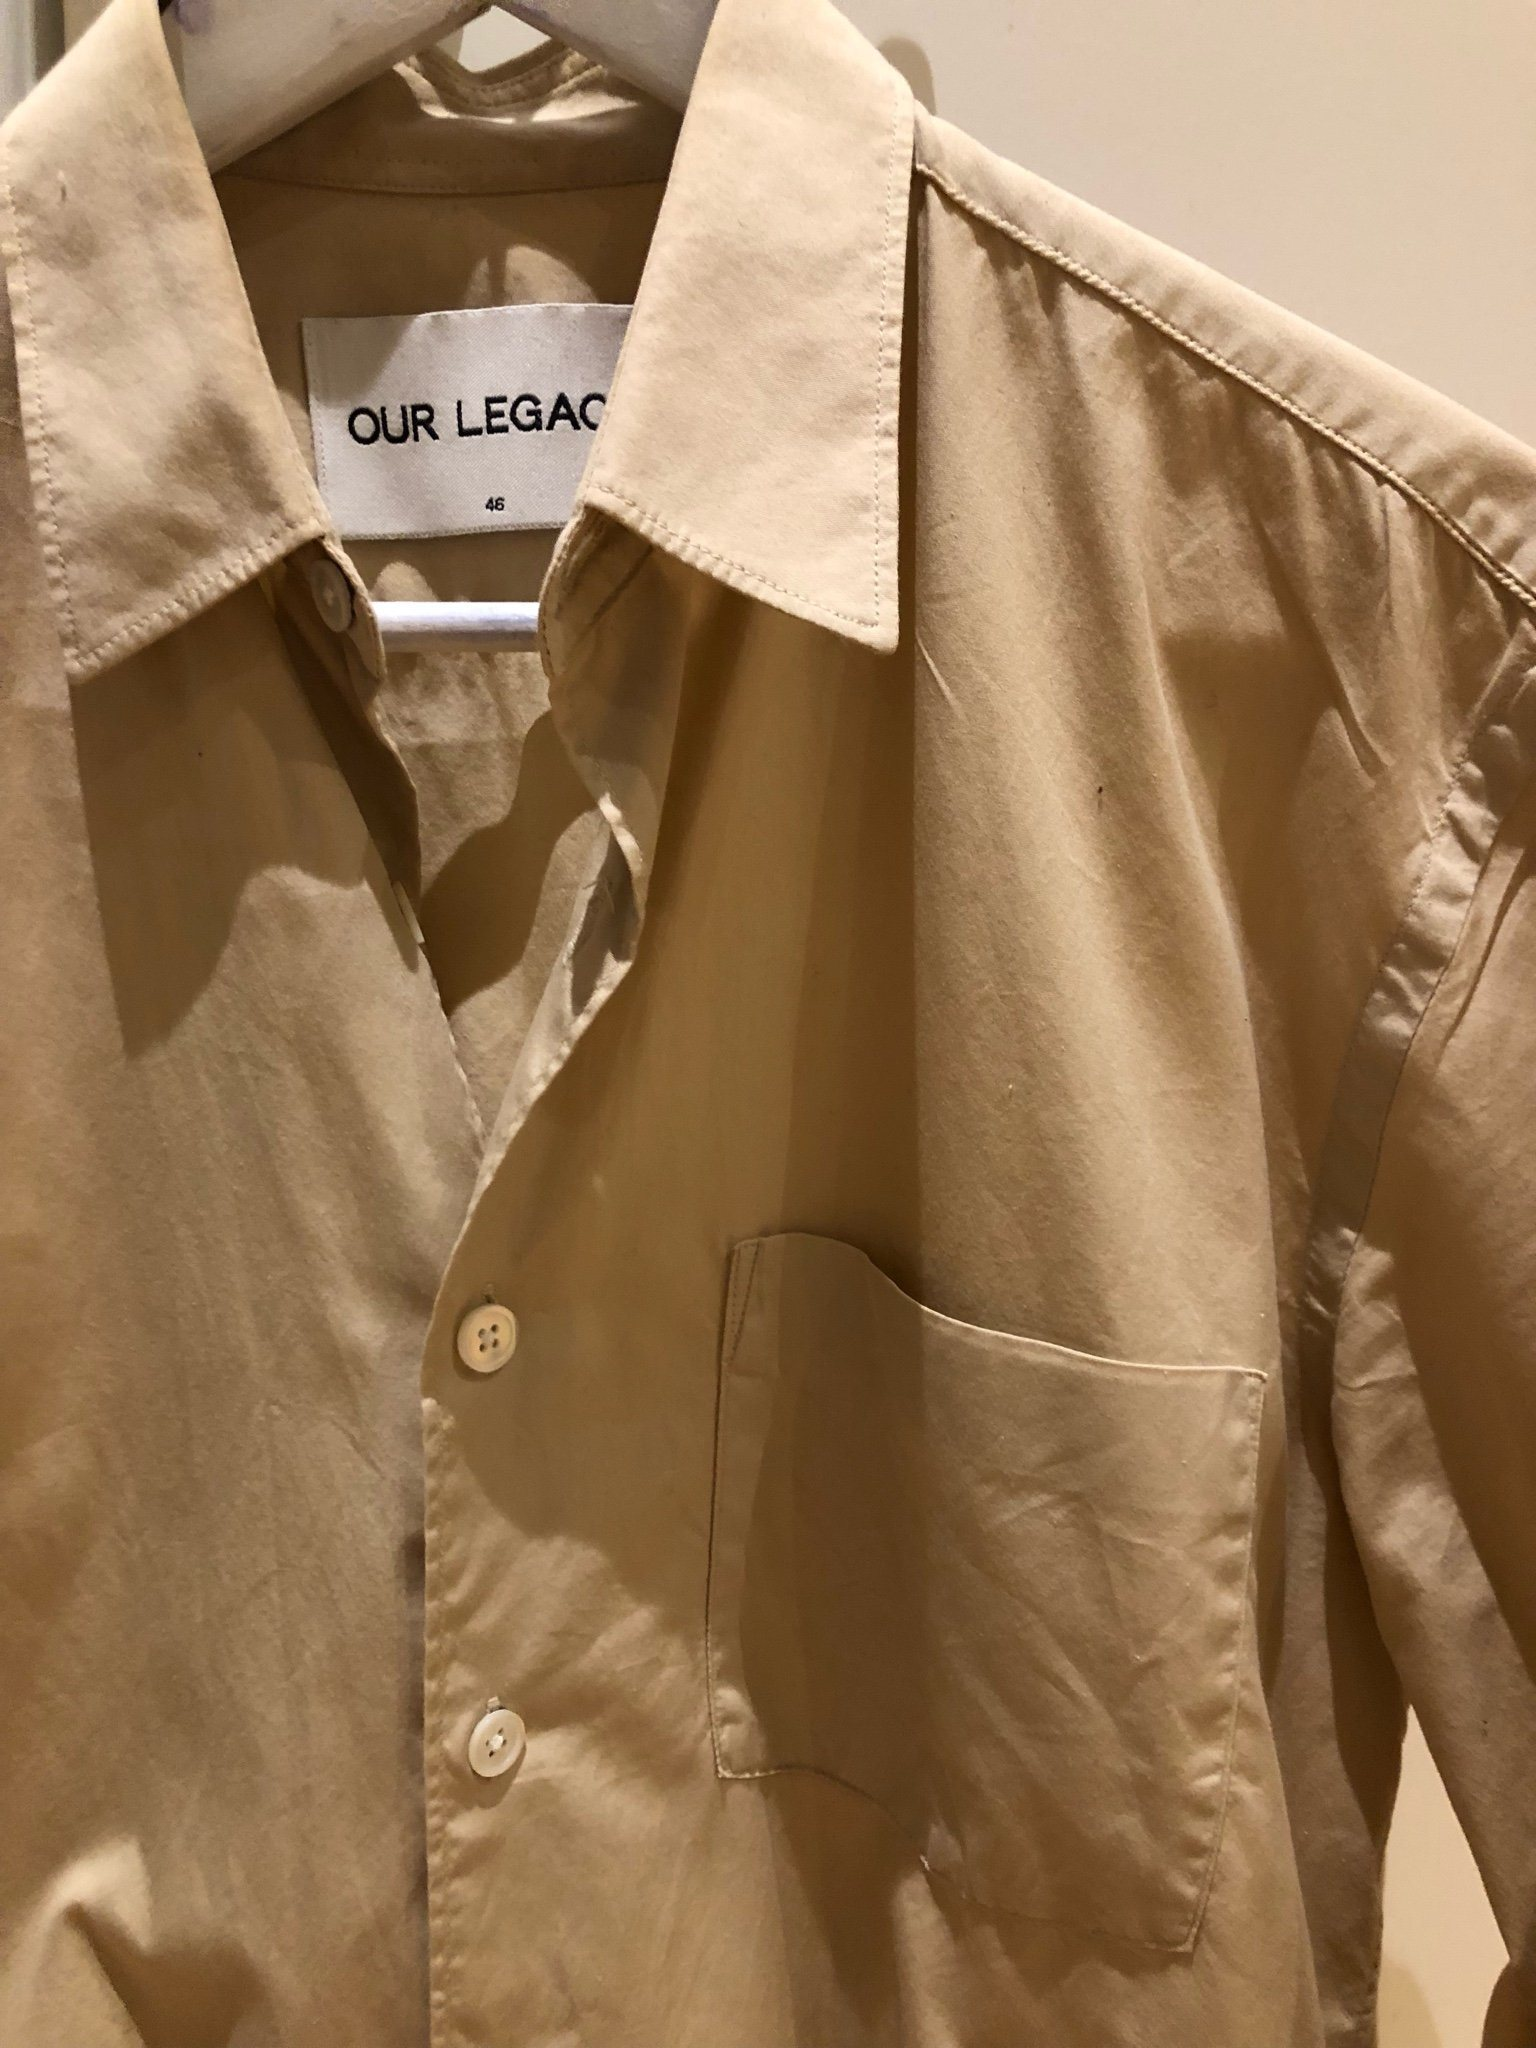 Our Legacy Initial shirt beige size 46 100% cotton